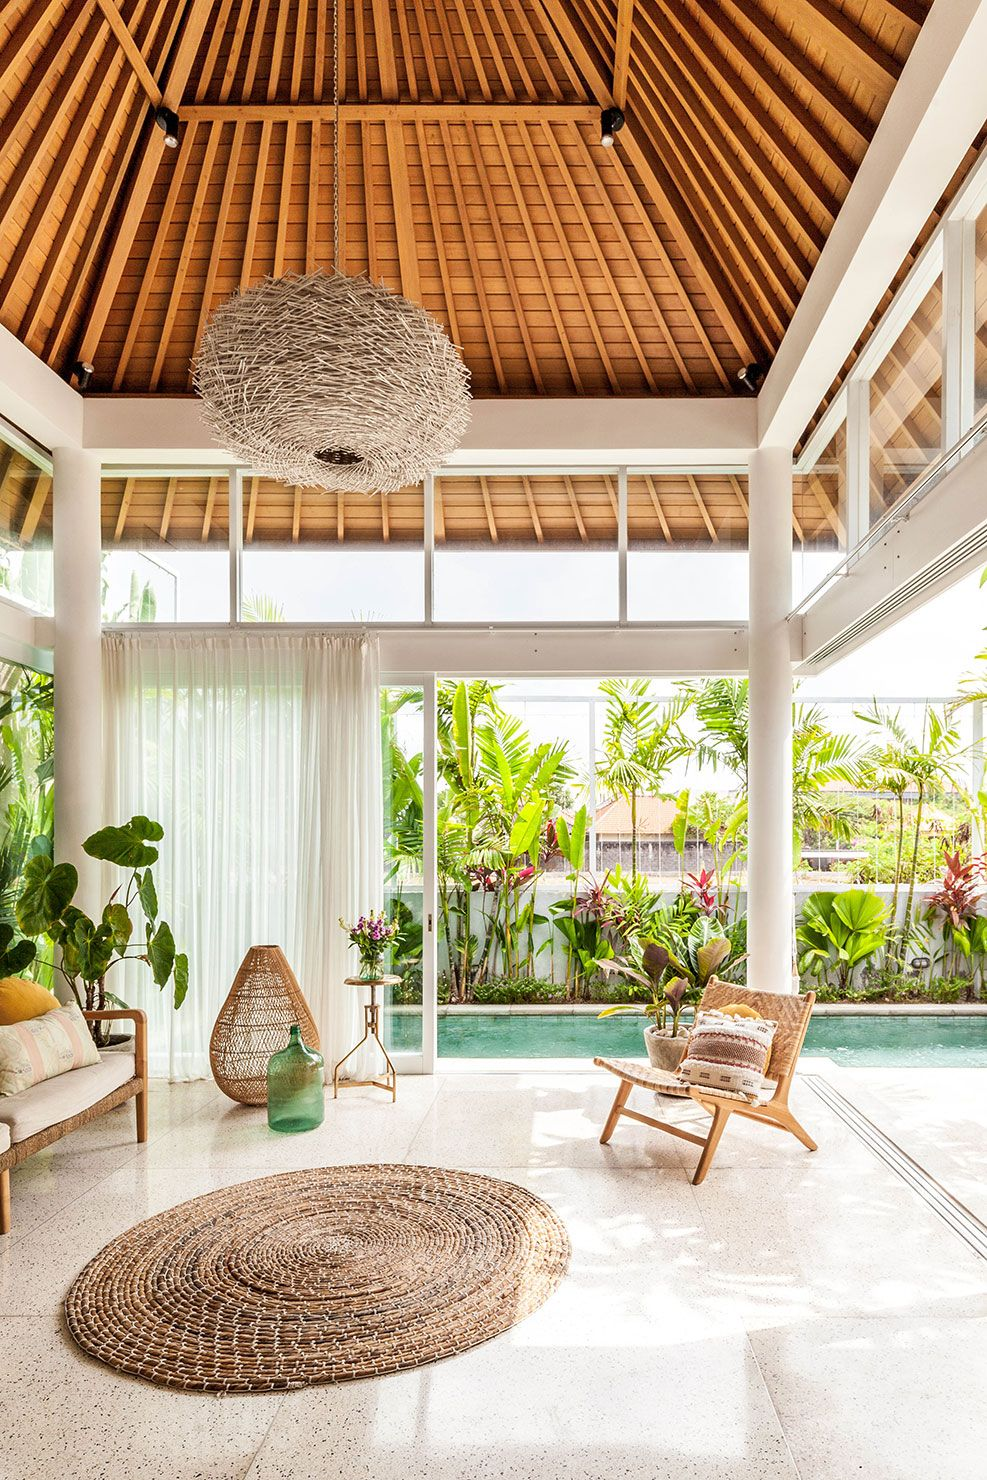 Bali Interiors Home Tropical House Design Bali Style Home Tropical Home Decor